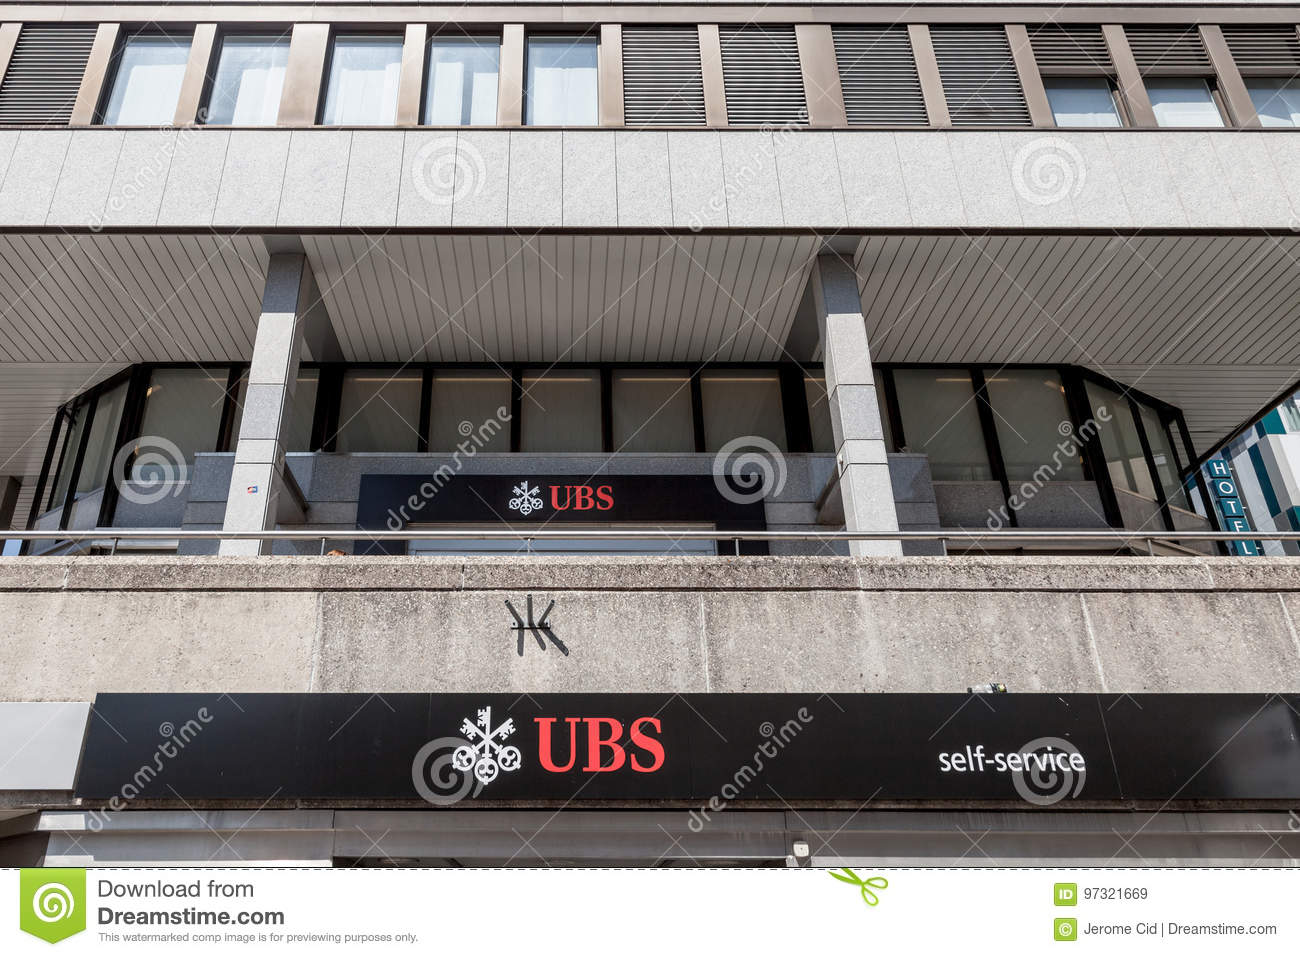 Local Branch Of UBS Union Bank Switerland In Geneva  UBS Is